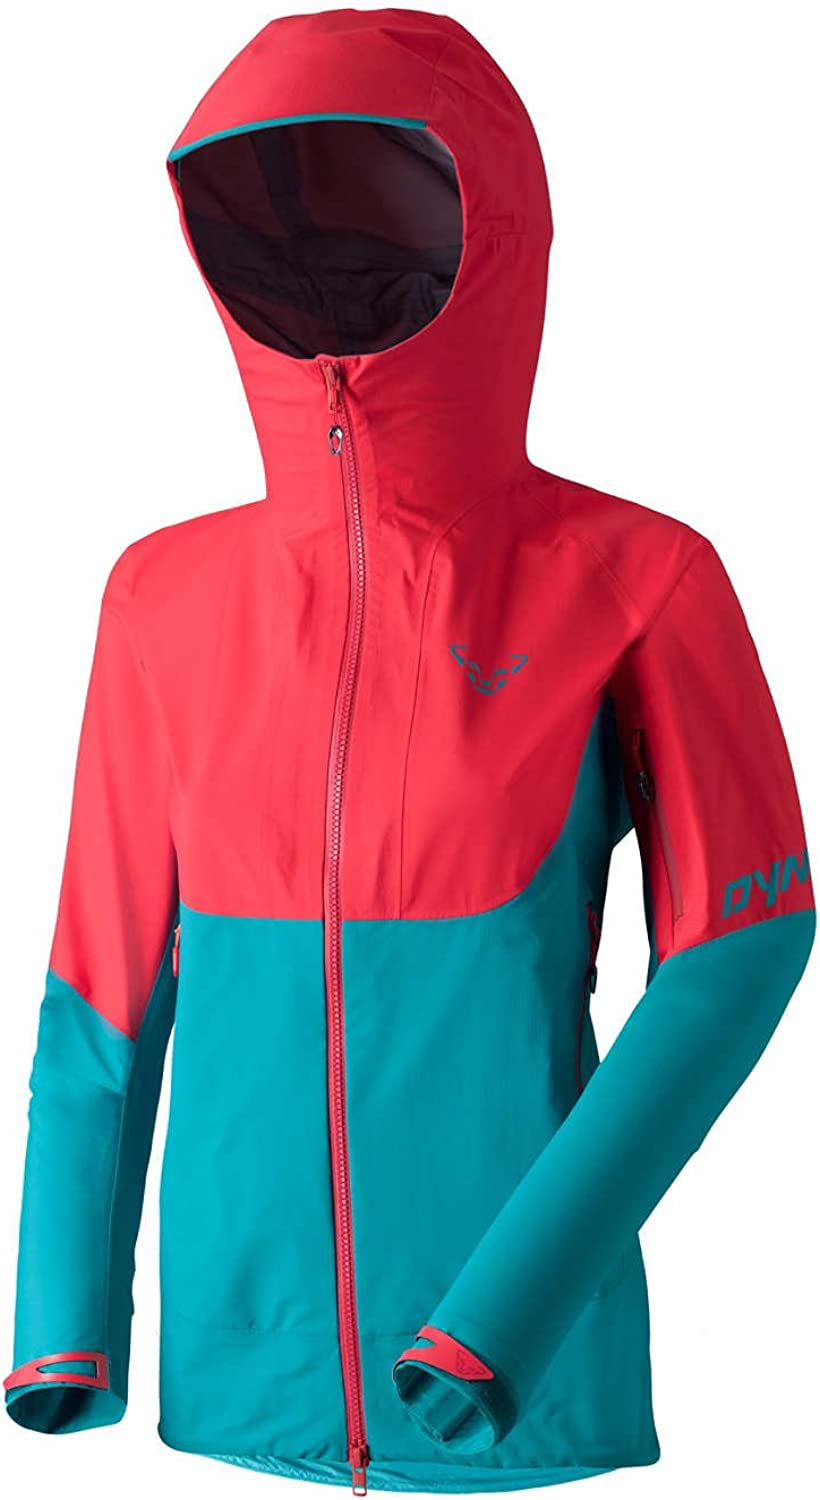 Dynafit Radical GTX W JKT, Women Ski Touring Jacket, women's, Radical Gtx W Jkt